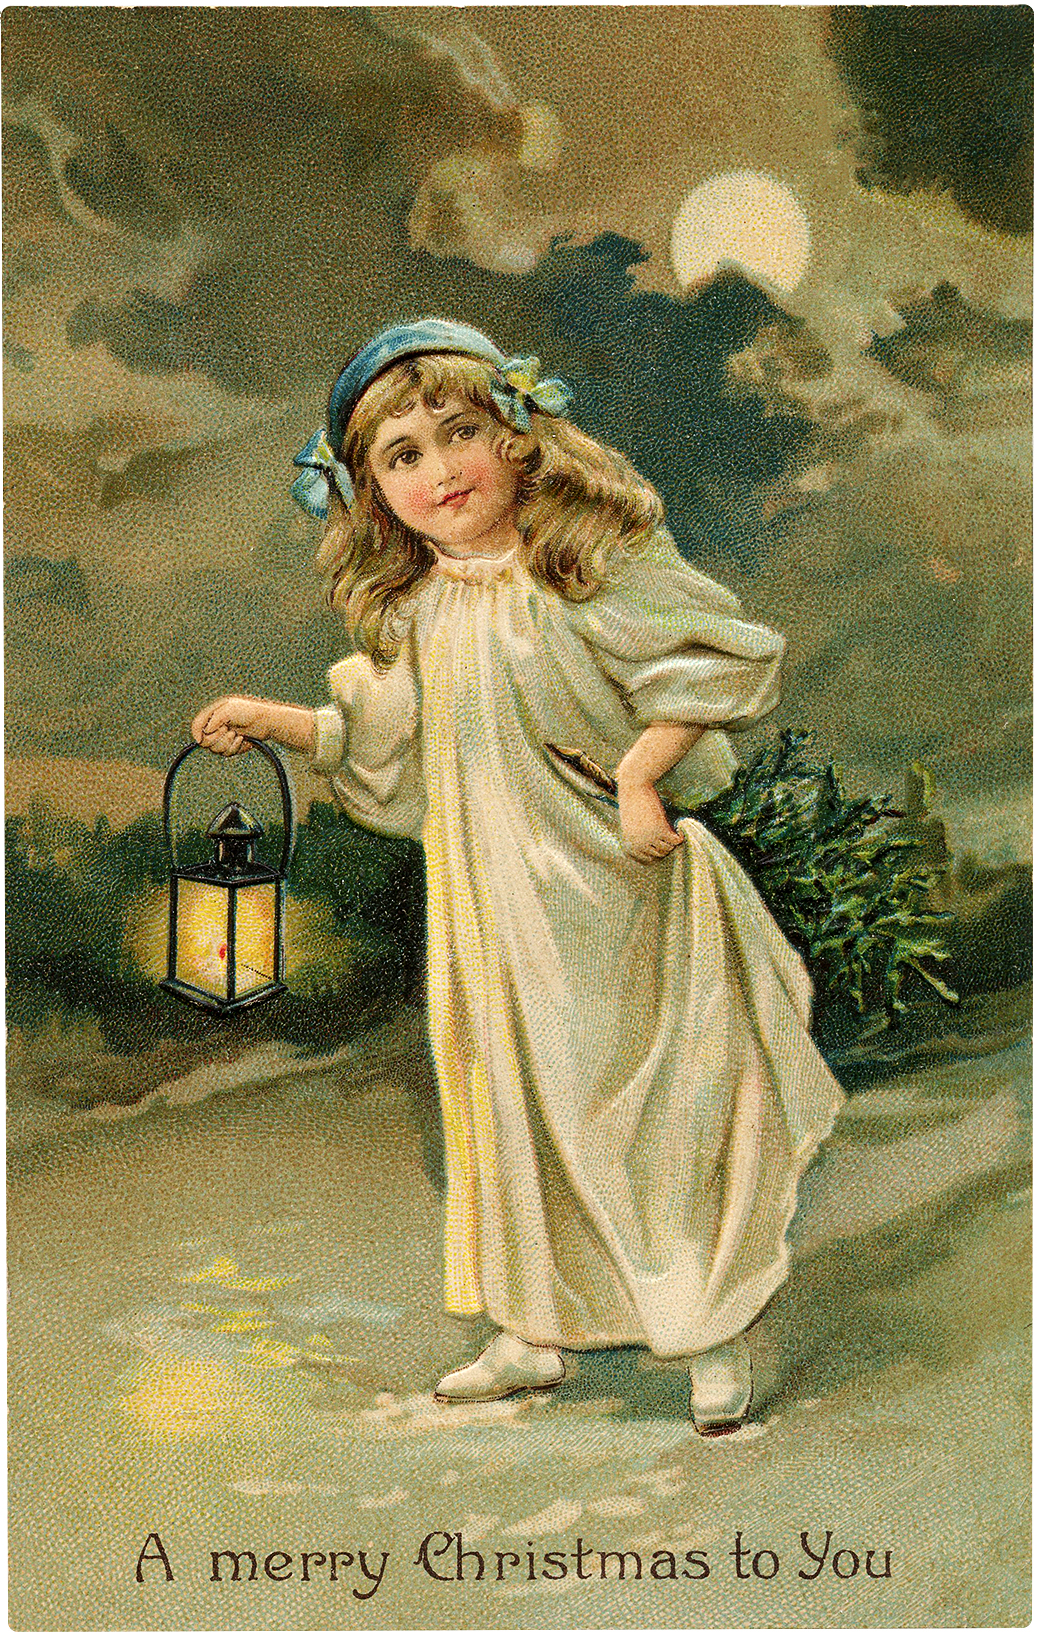 Vintage Girl Carrying Lantern Christmas Postcard!